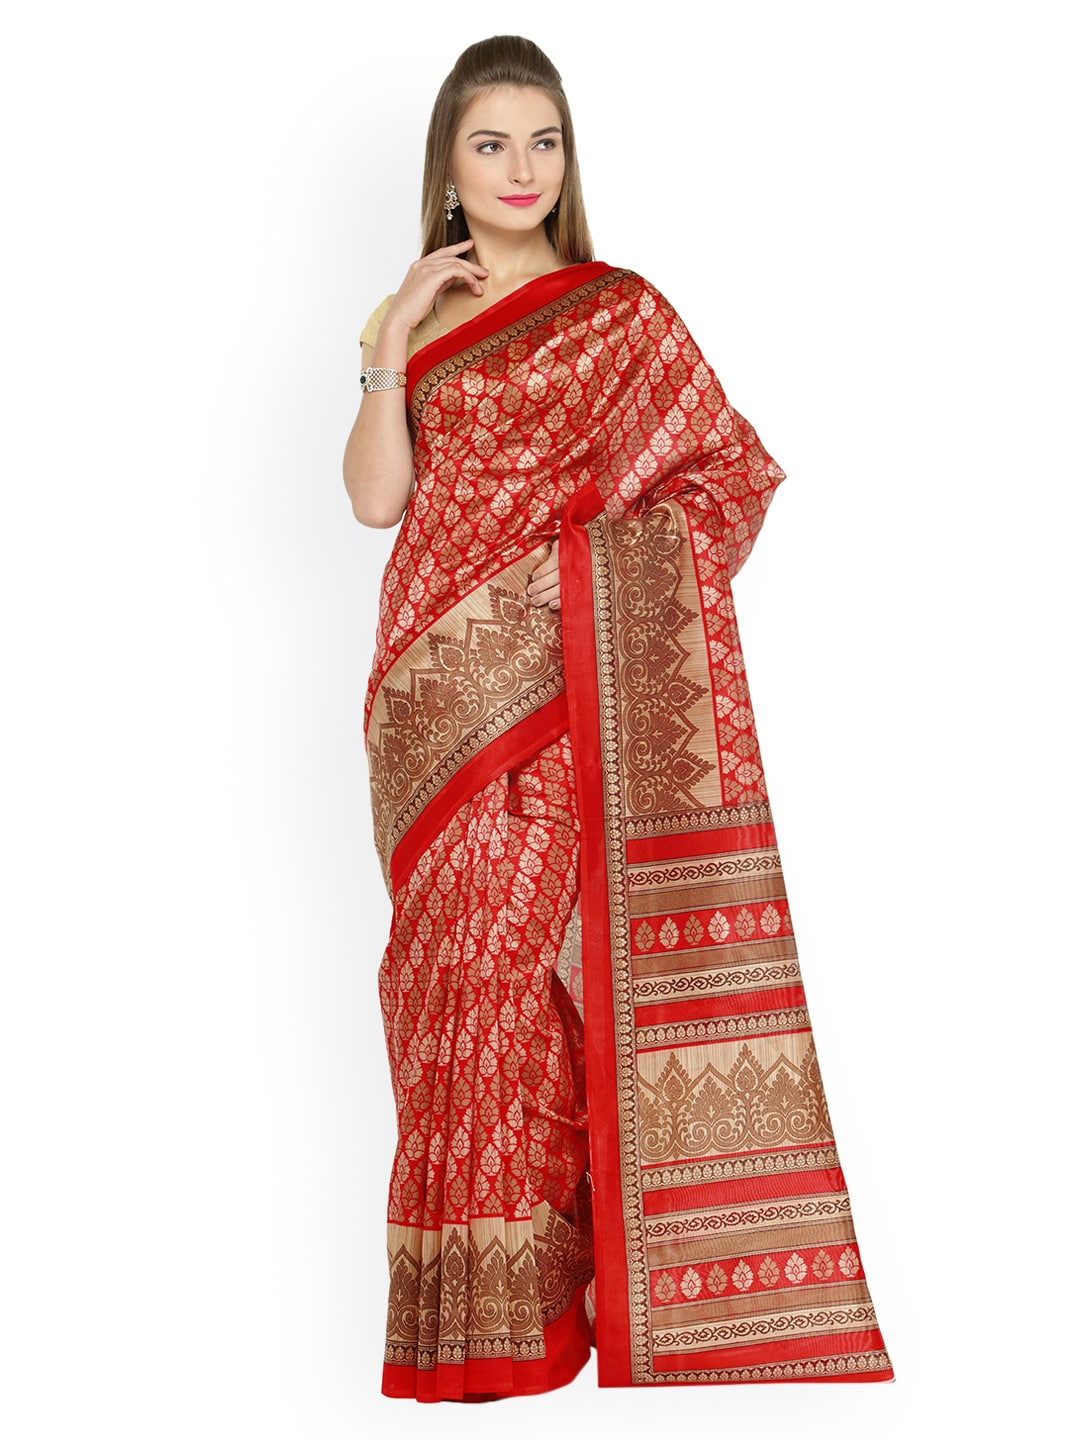 35547c9f6c2a5 Red Saree - Buy Red Color Fashion Sarees Online